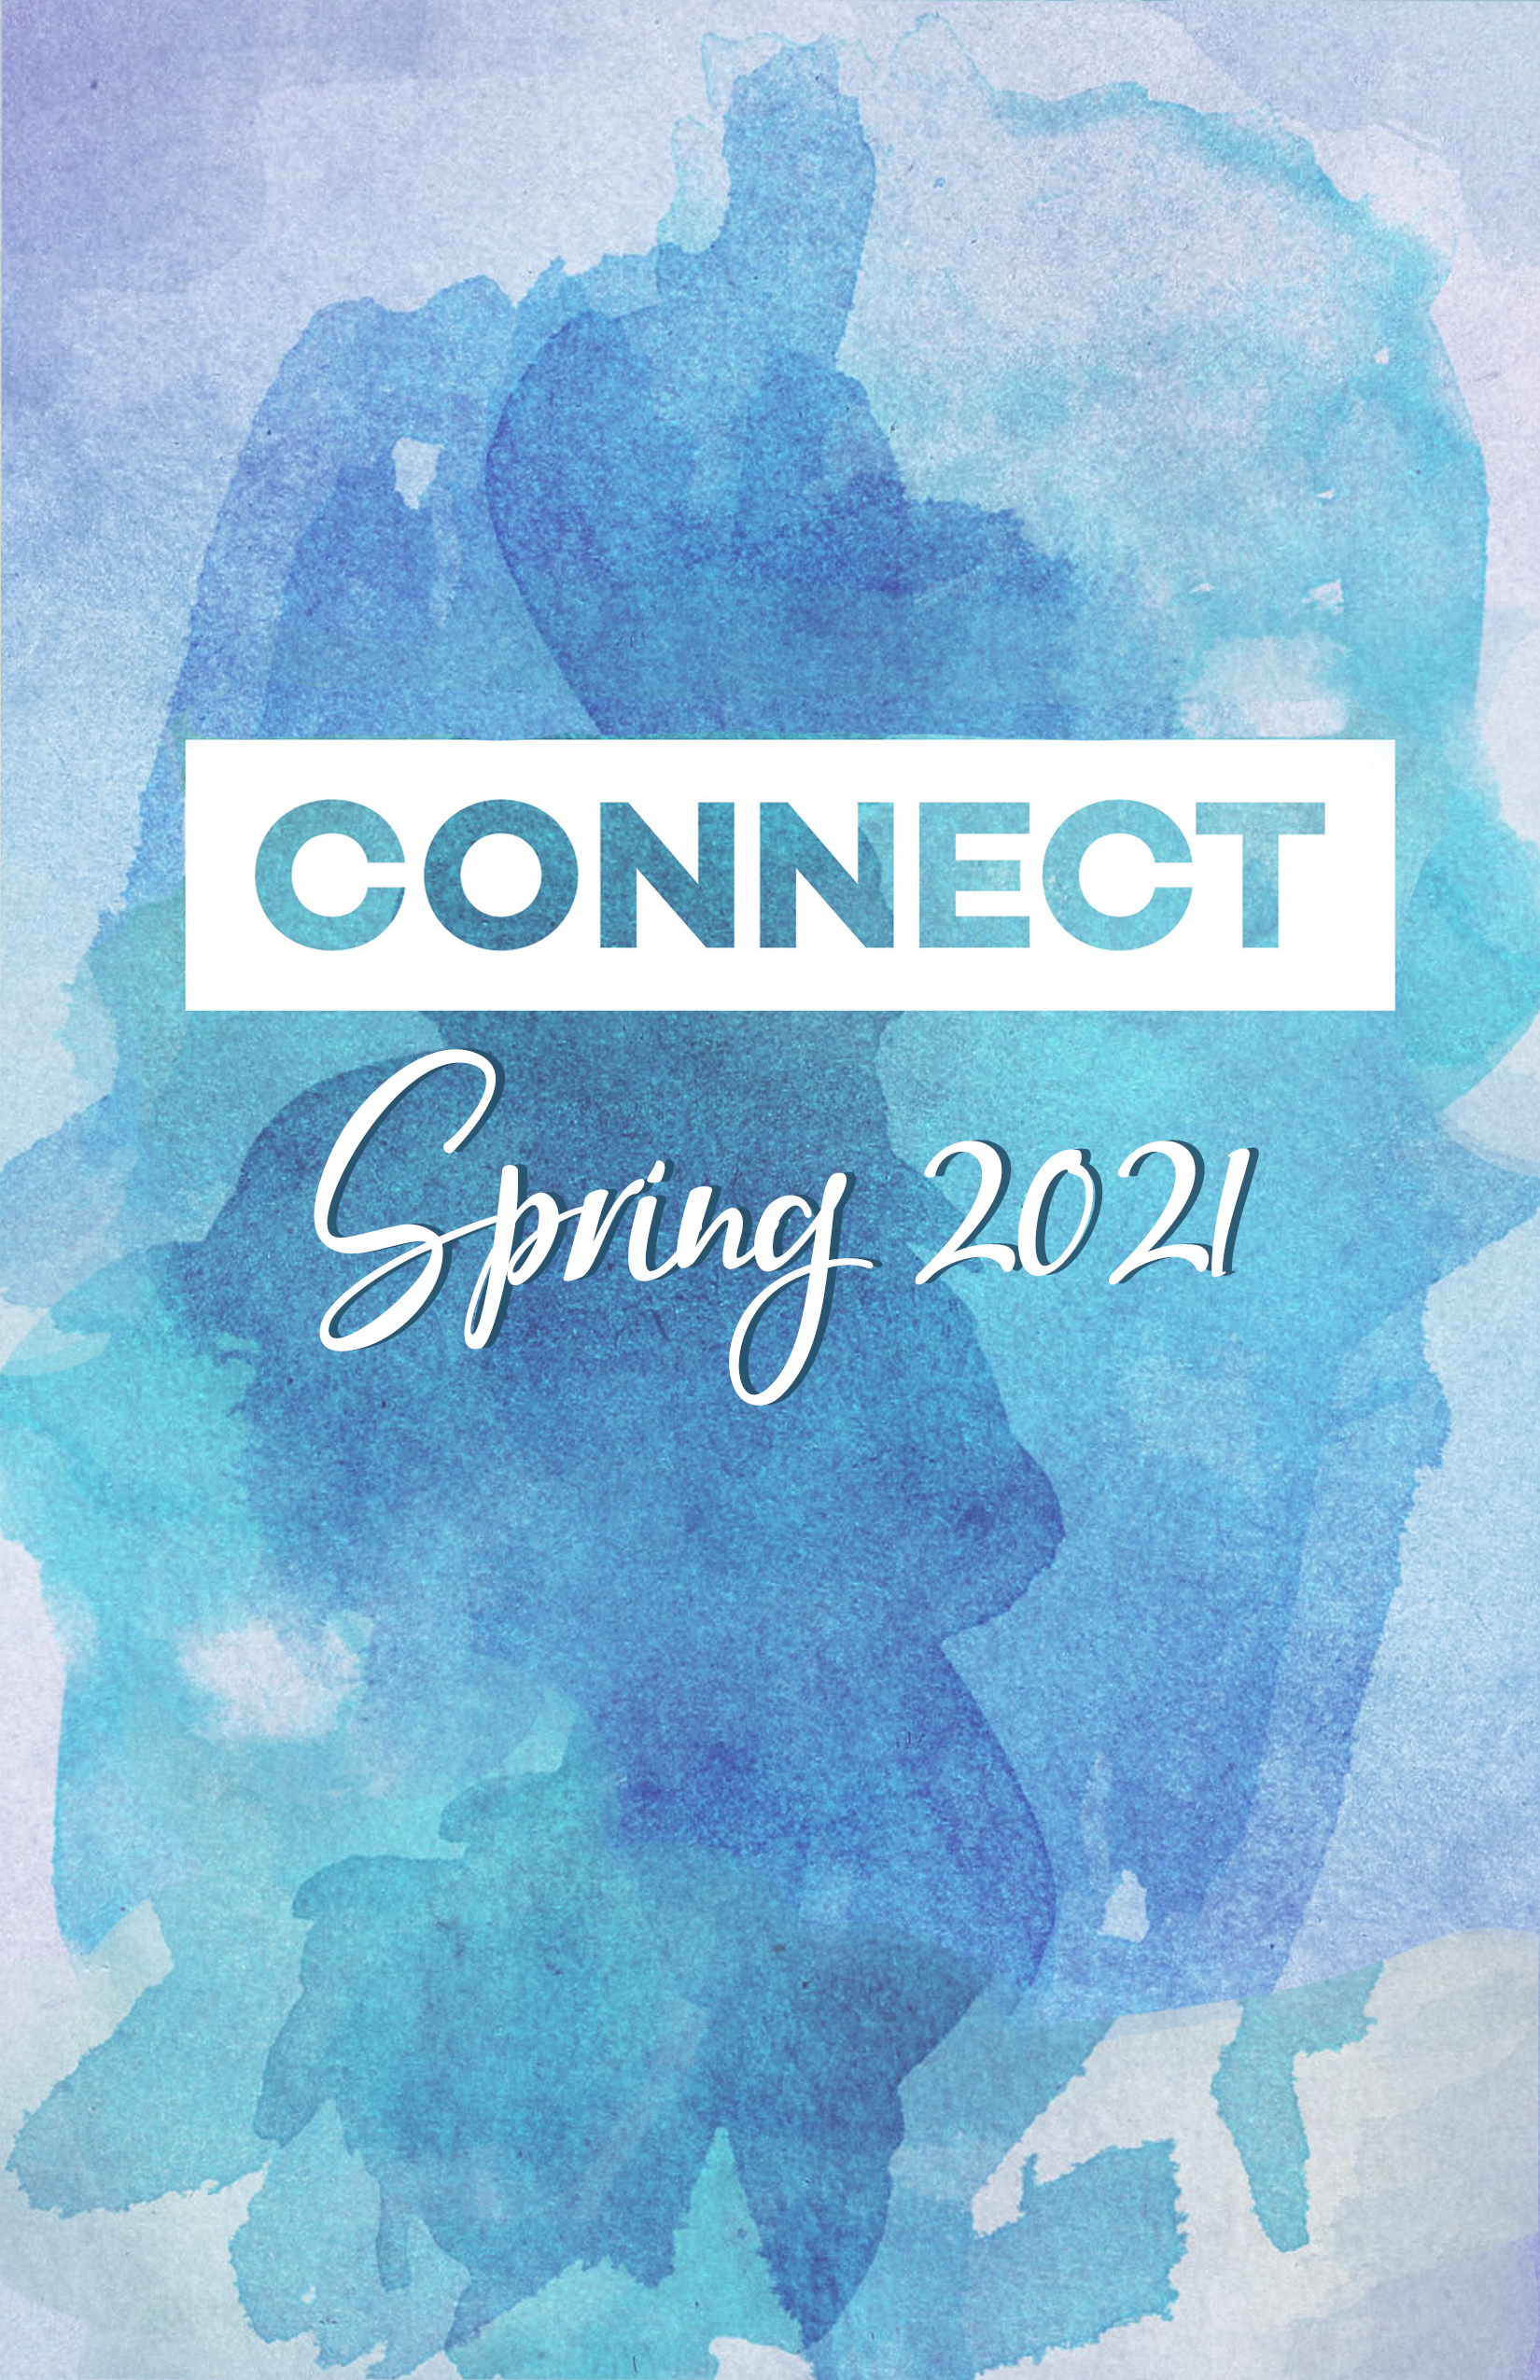 2021 spring Cover 2nd version